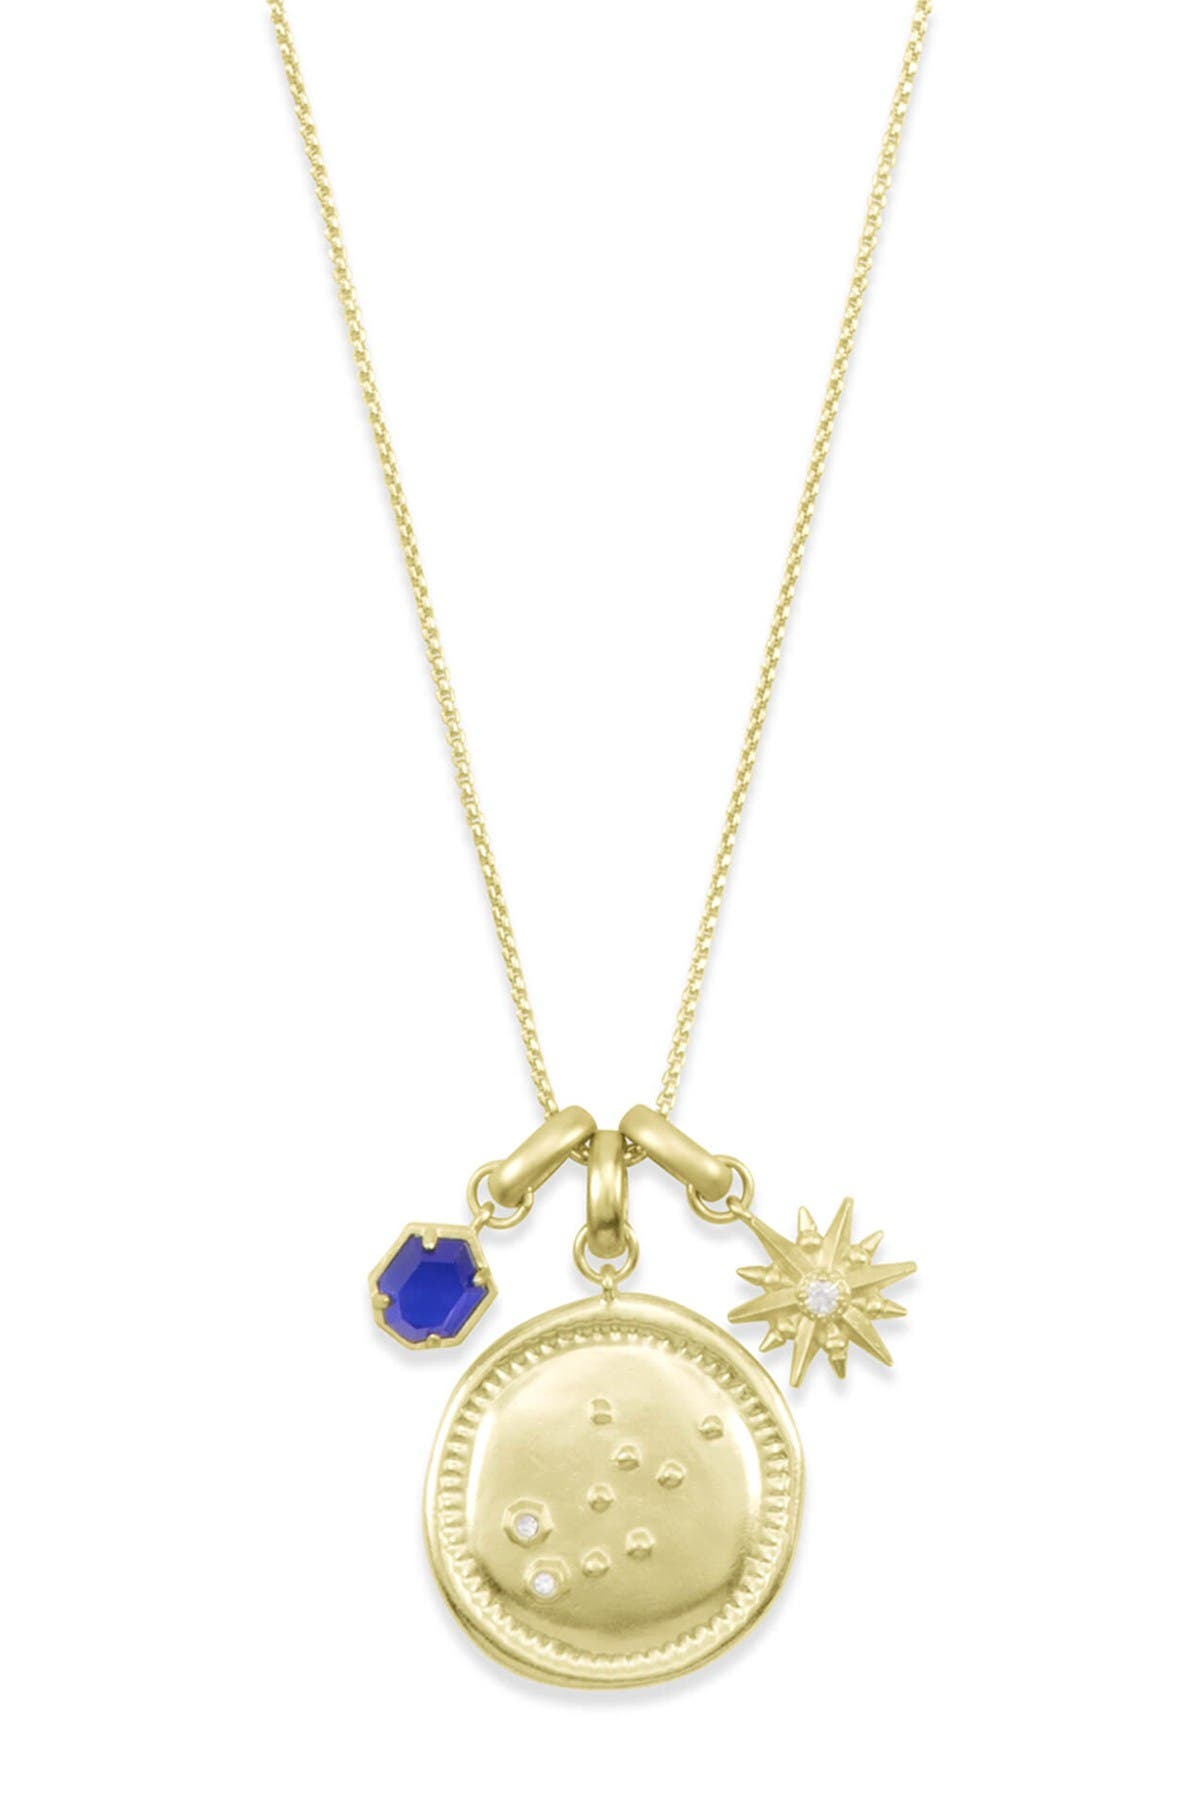 Image of Kendra Scott 14K Gold Plated Virgo Charm Necklace